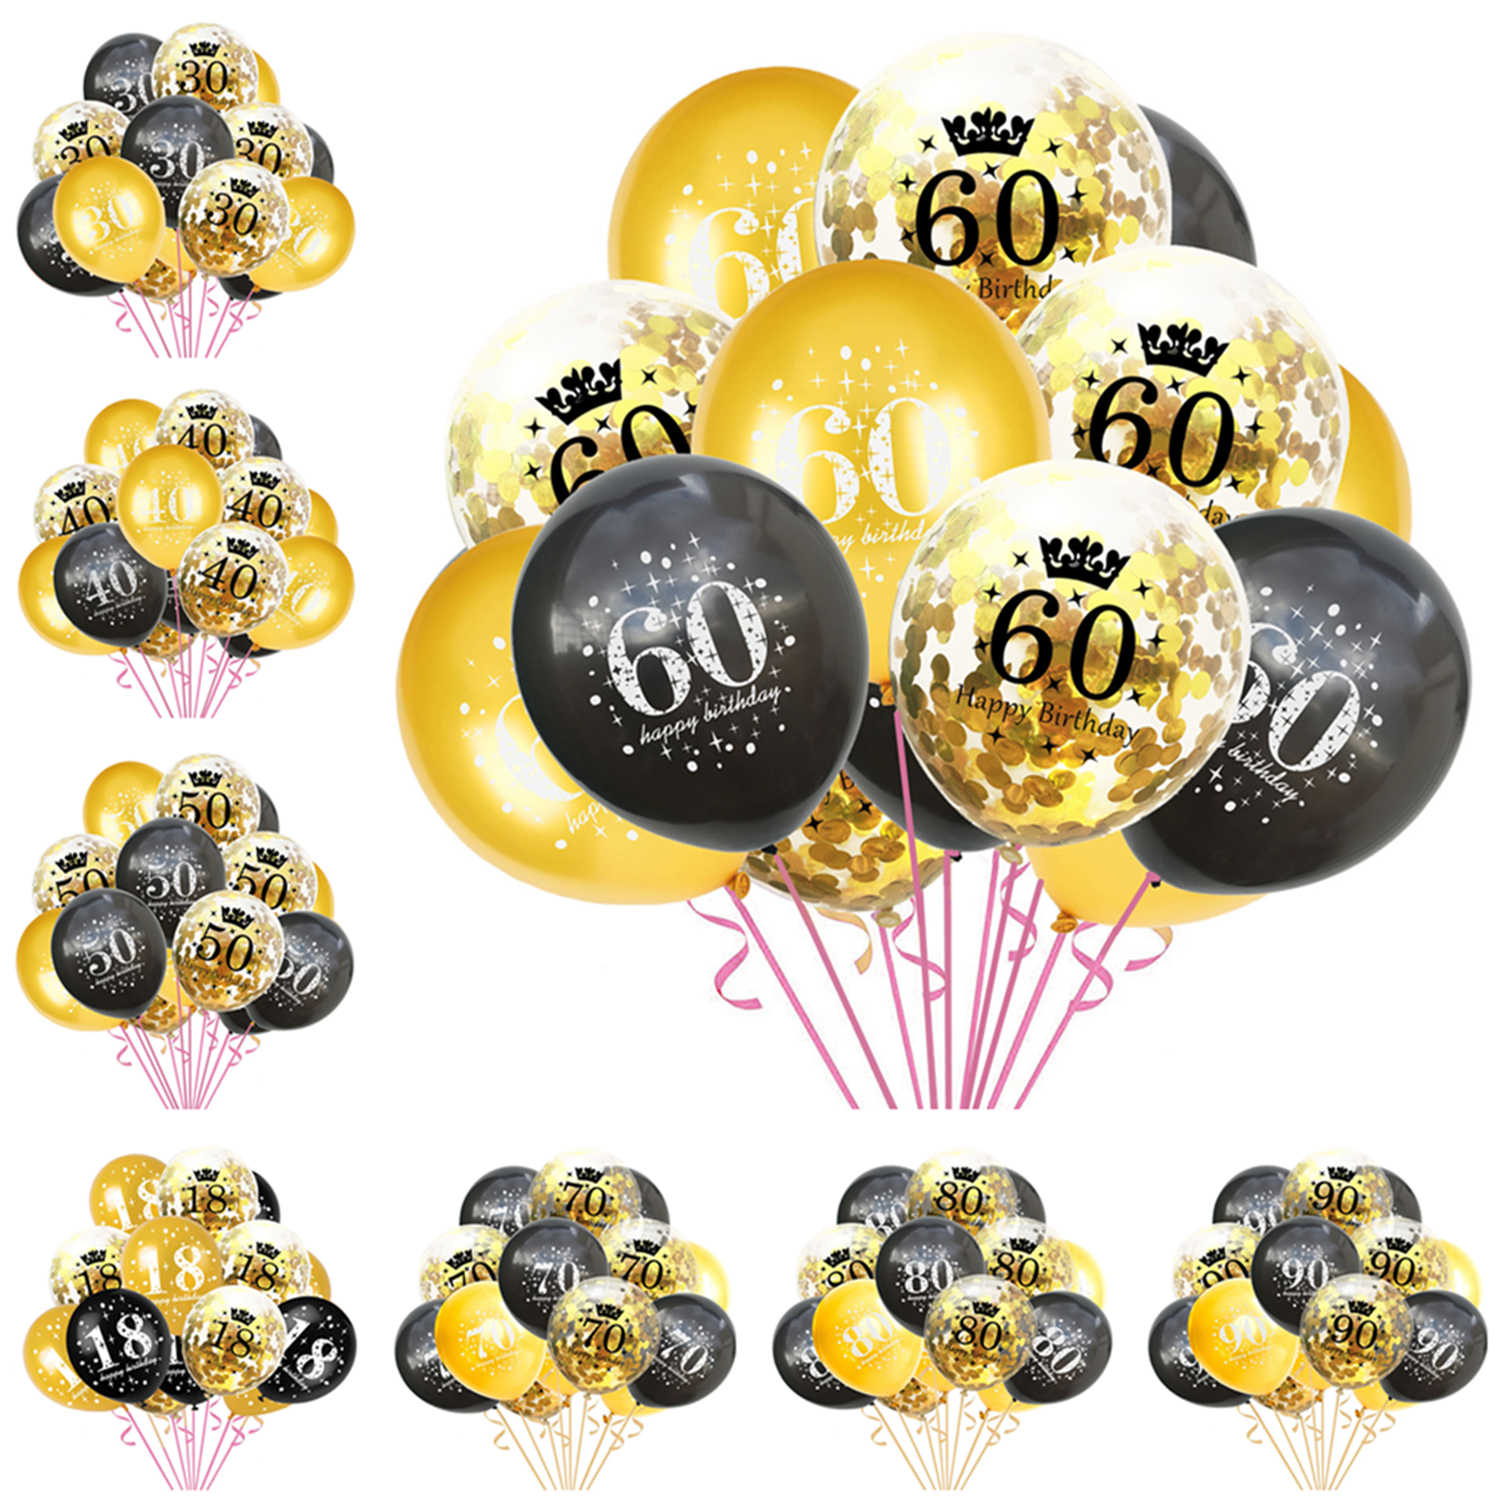 15pcs/set Gold Black Number Latex Balloons Happy Birthday Confetti Balloons 16/18/30/40/50/60th Birthday Anniversary Decorations